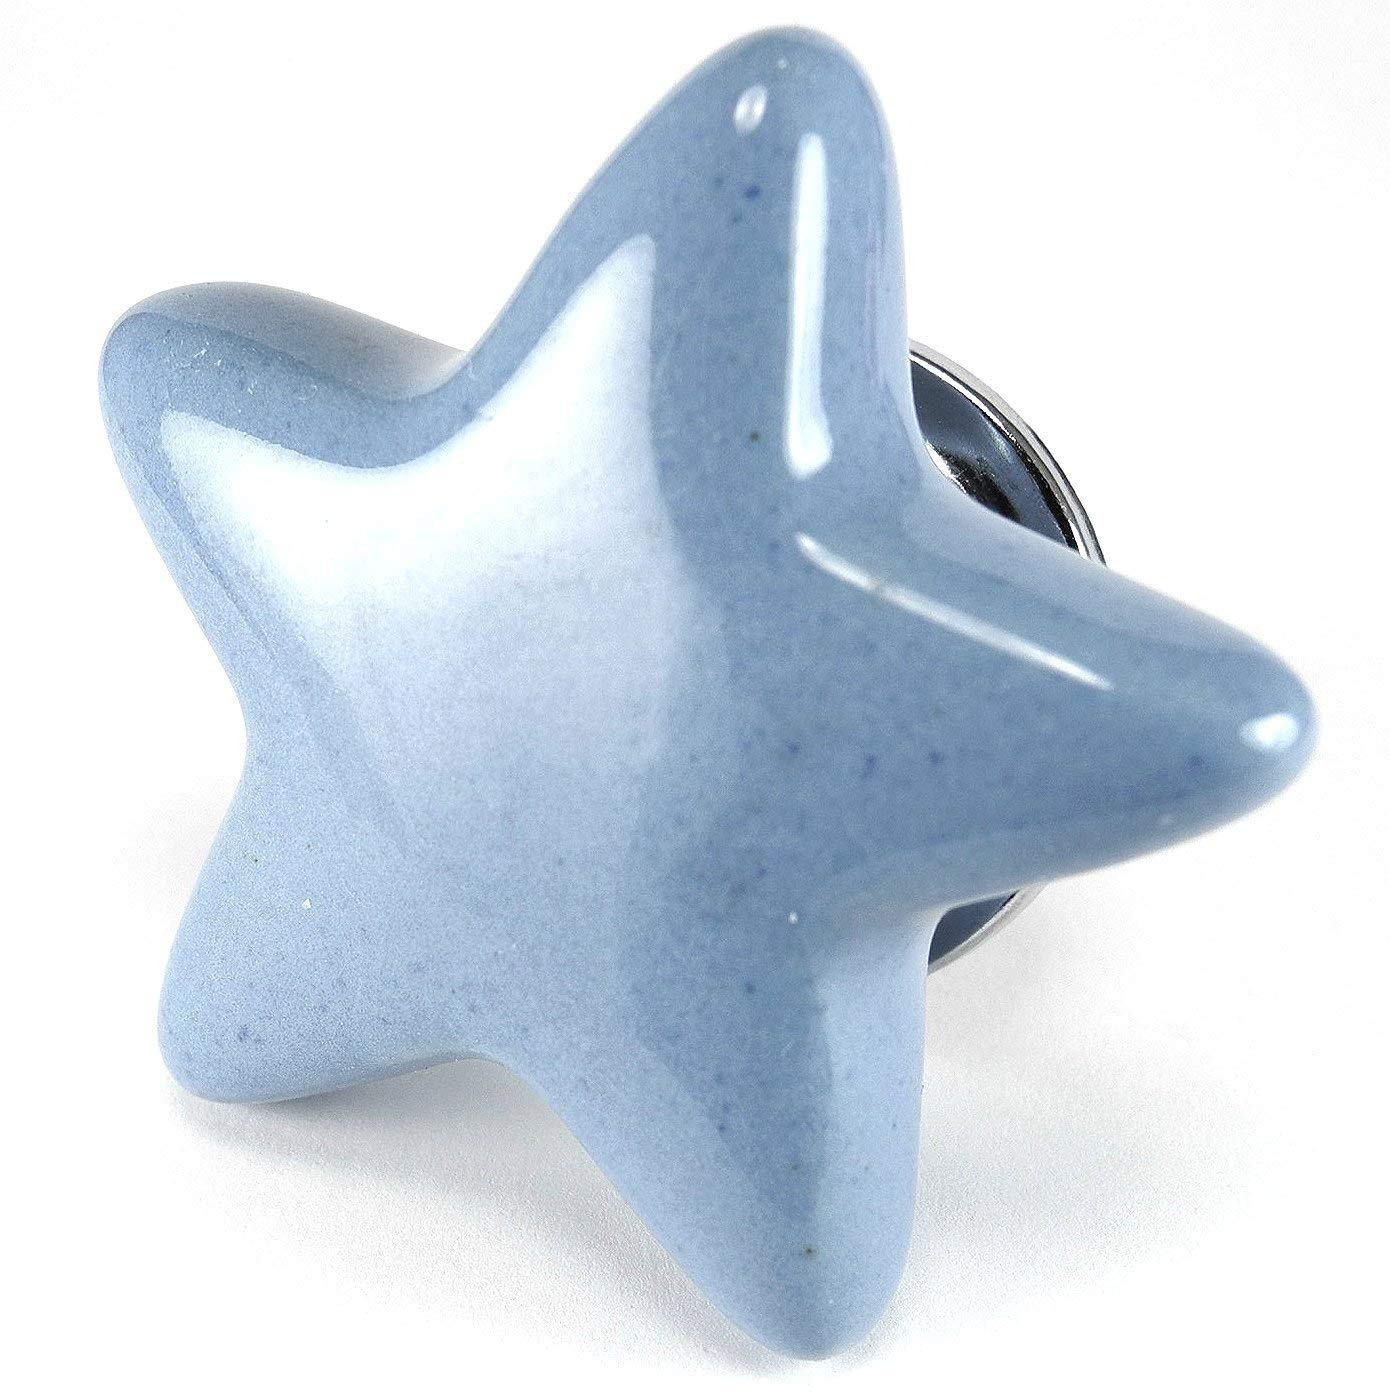 Periwinkle Blue Ceramic Star Cabinet Knobs, Drawer Pulls & Handles Set/6pc C88 Ceramic Star Shape Knobs for Cabinets, Children's Dresser, Kitchen Cabinets and Cupboards with Chrome Hardware